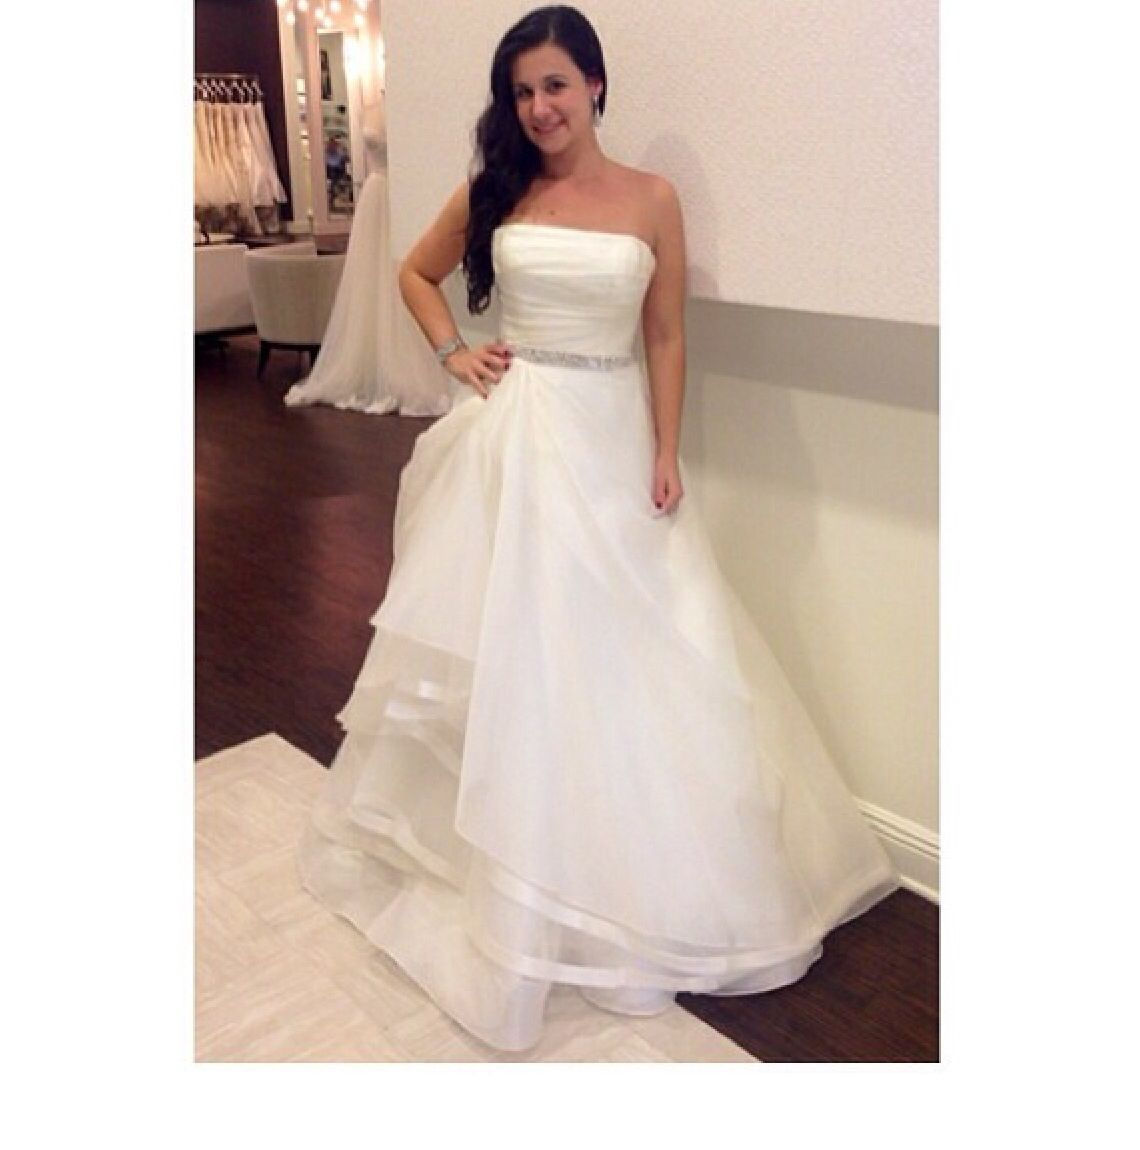 Check out our solutions bridal stylist in this gorgeous alyne the global destination for the couture wedding dress experience in orlando fl specializing in world renown wedding dress designers and bridal accessories ombrellifo Choice Image